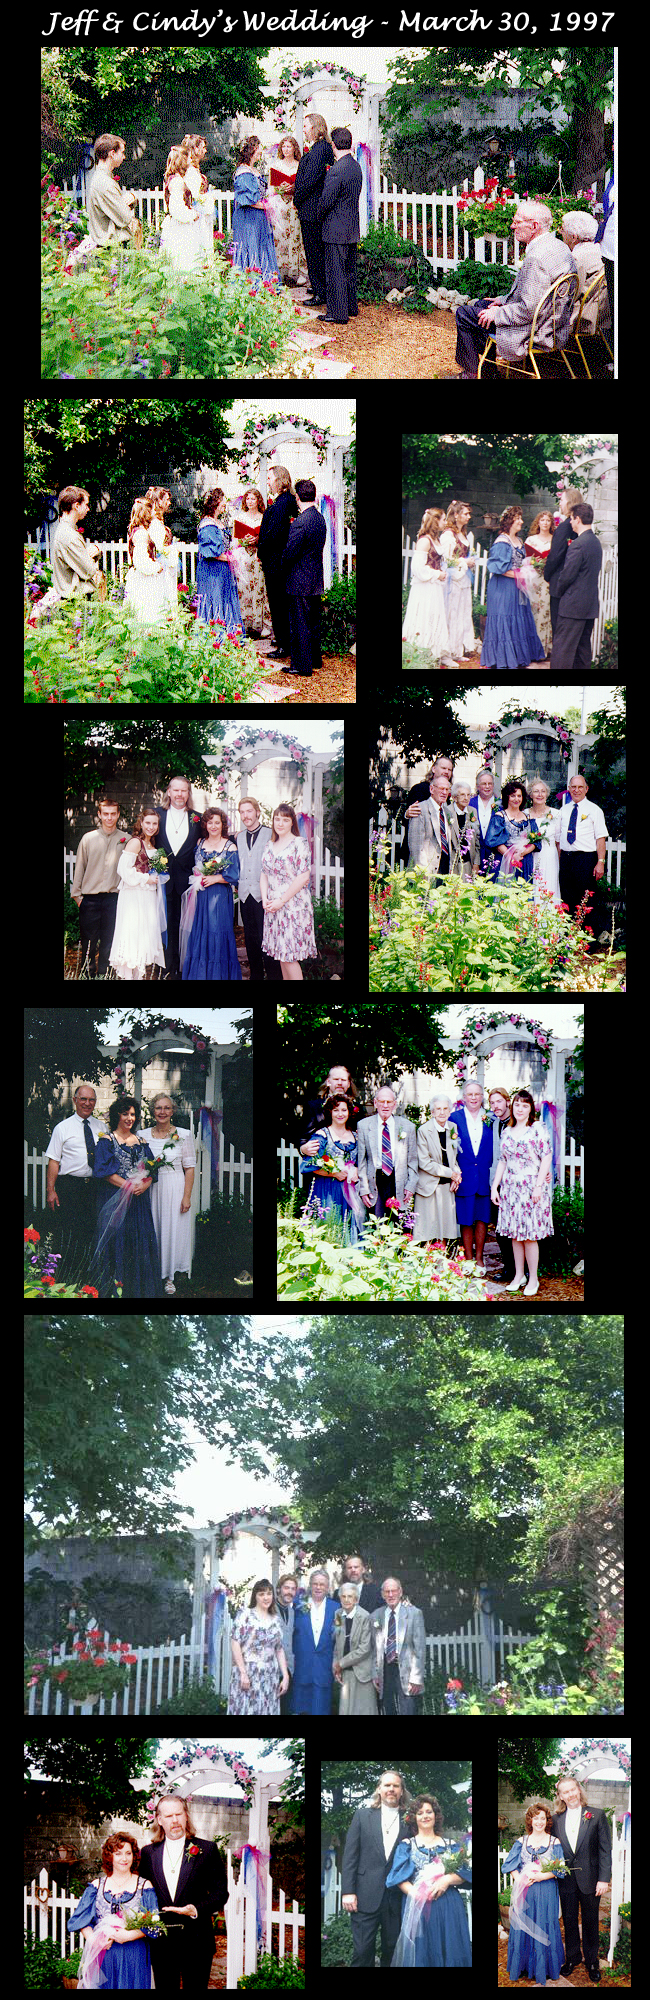 Jeff & Cindy Wedding Photo Collage